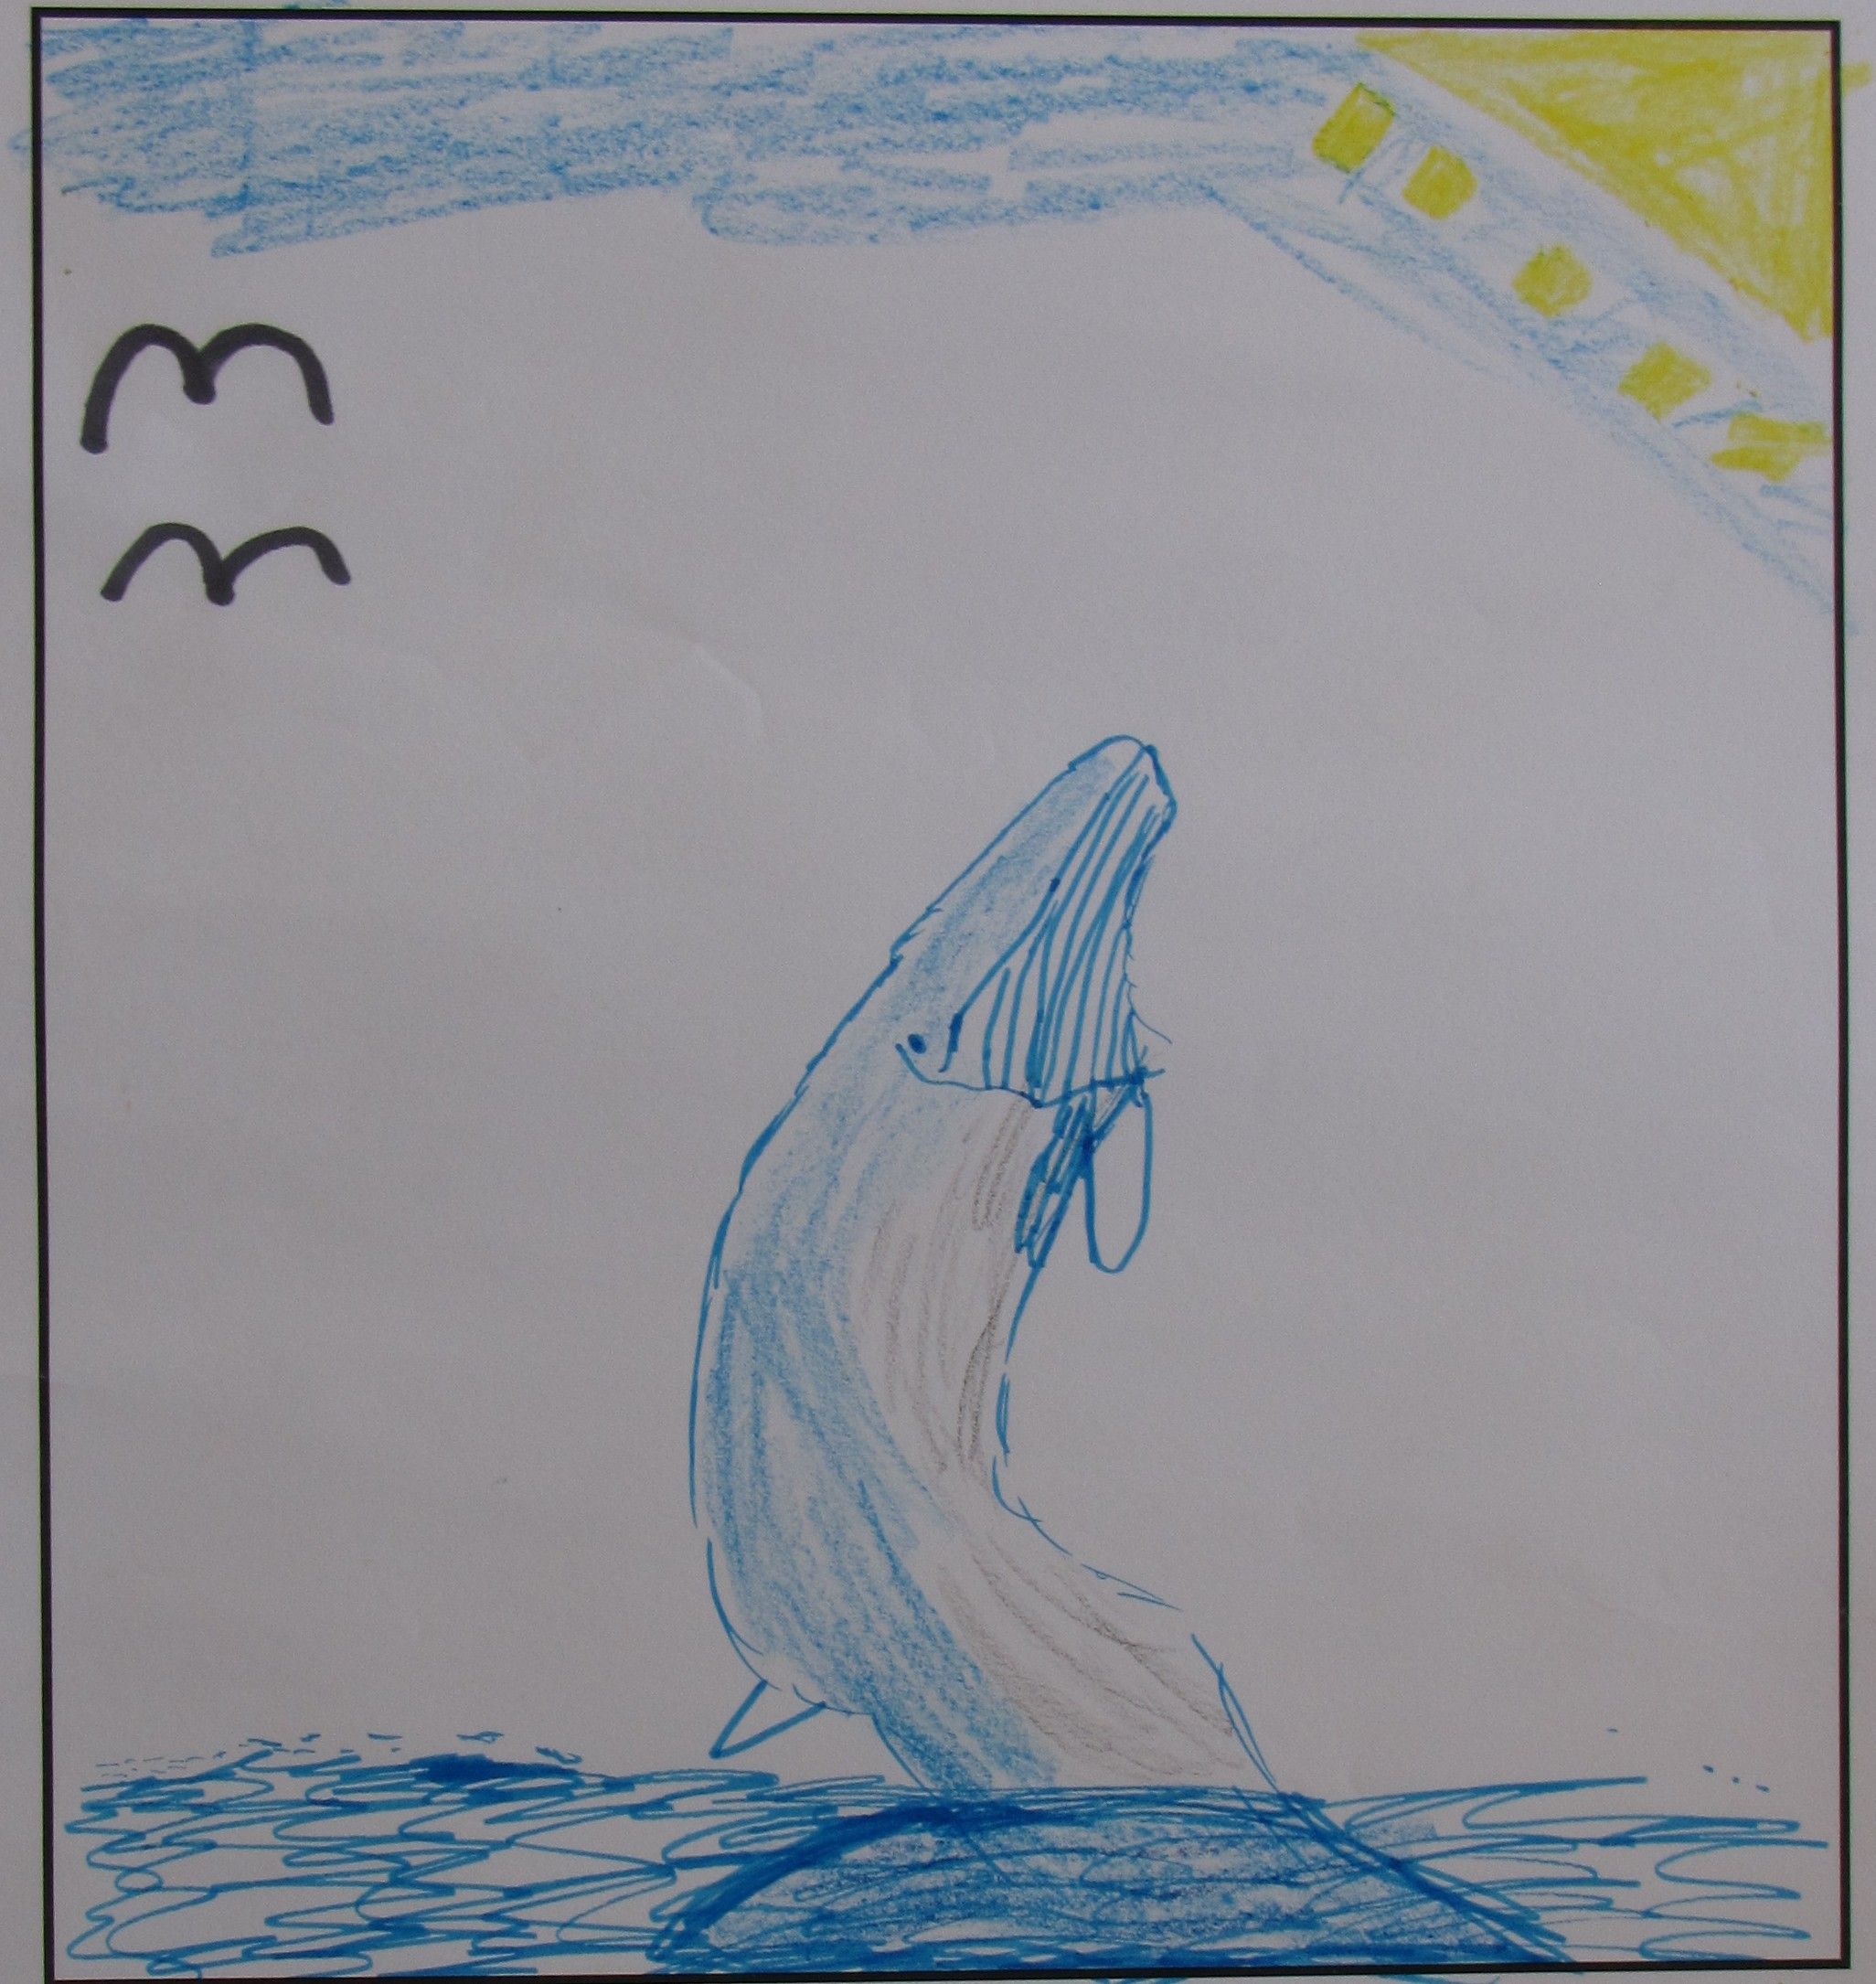 'The Whale Adventure' by Jessica McNeilly, Age 7